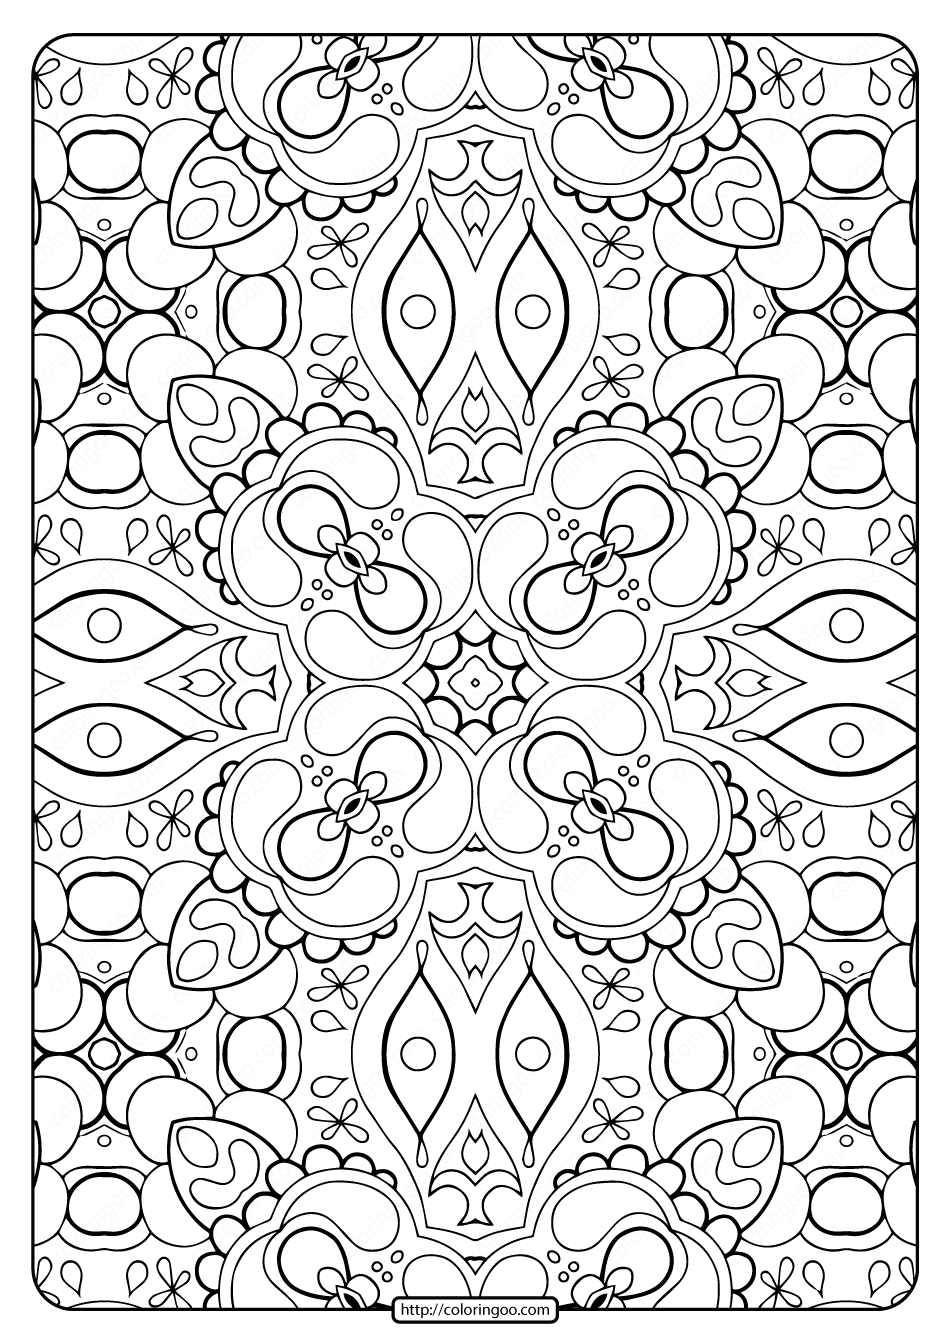 coloring pages for adults printable free coloring pages for adults printable easy to color pages printable adults for coloring